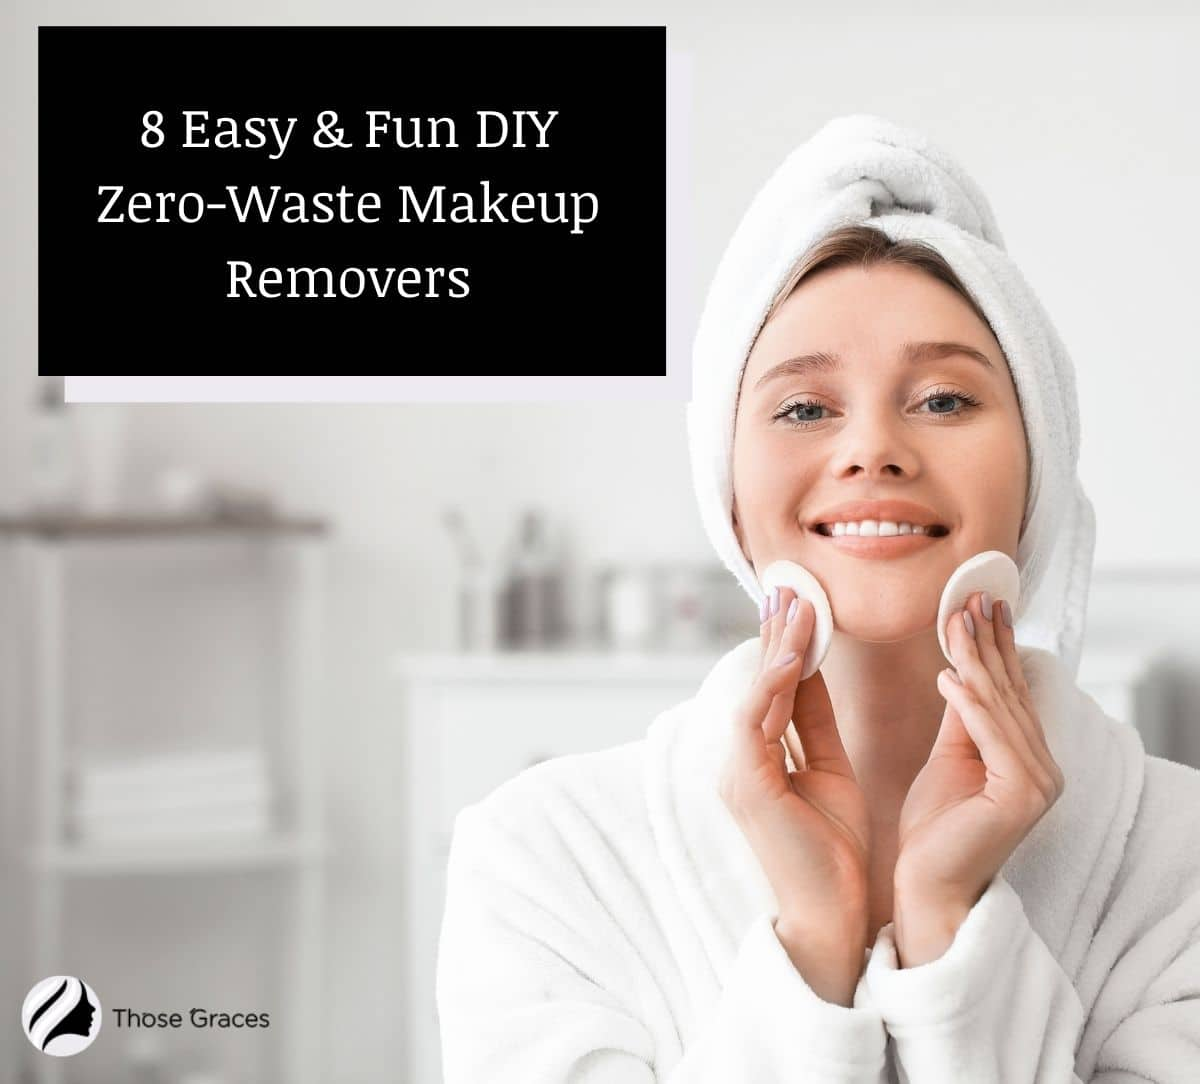 lady in robe removing her makeup using the DIY Zero Waste Makeup Removers and zero-waste cotton pads